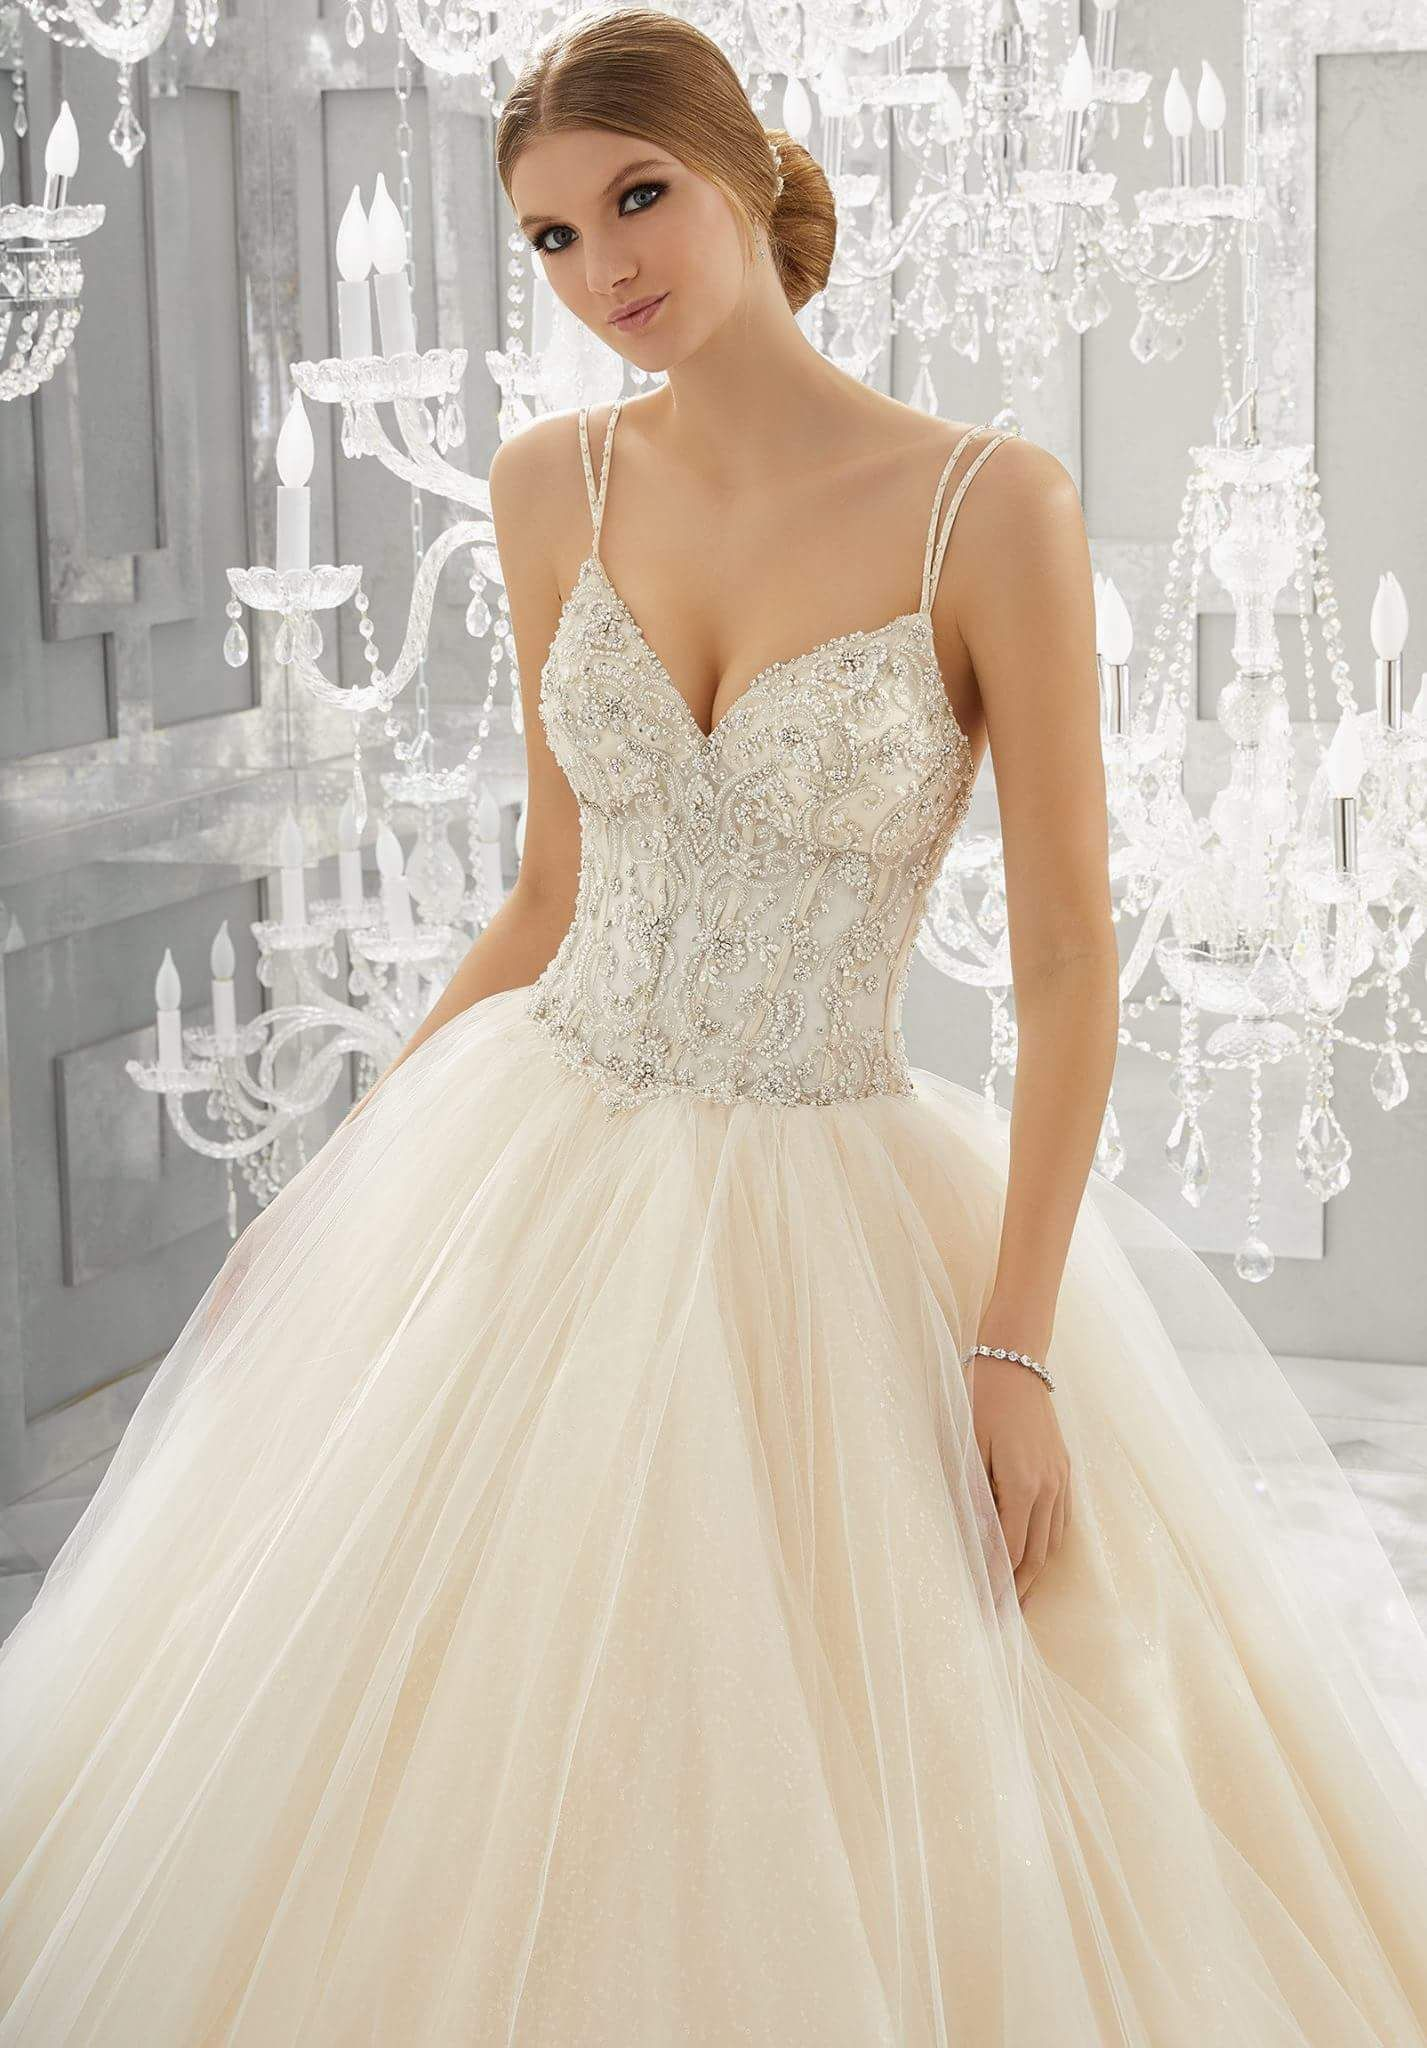 Pin by cassidy frederick on dresses pinterest bridal dresses